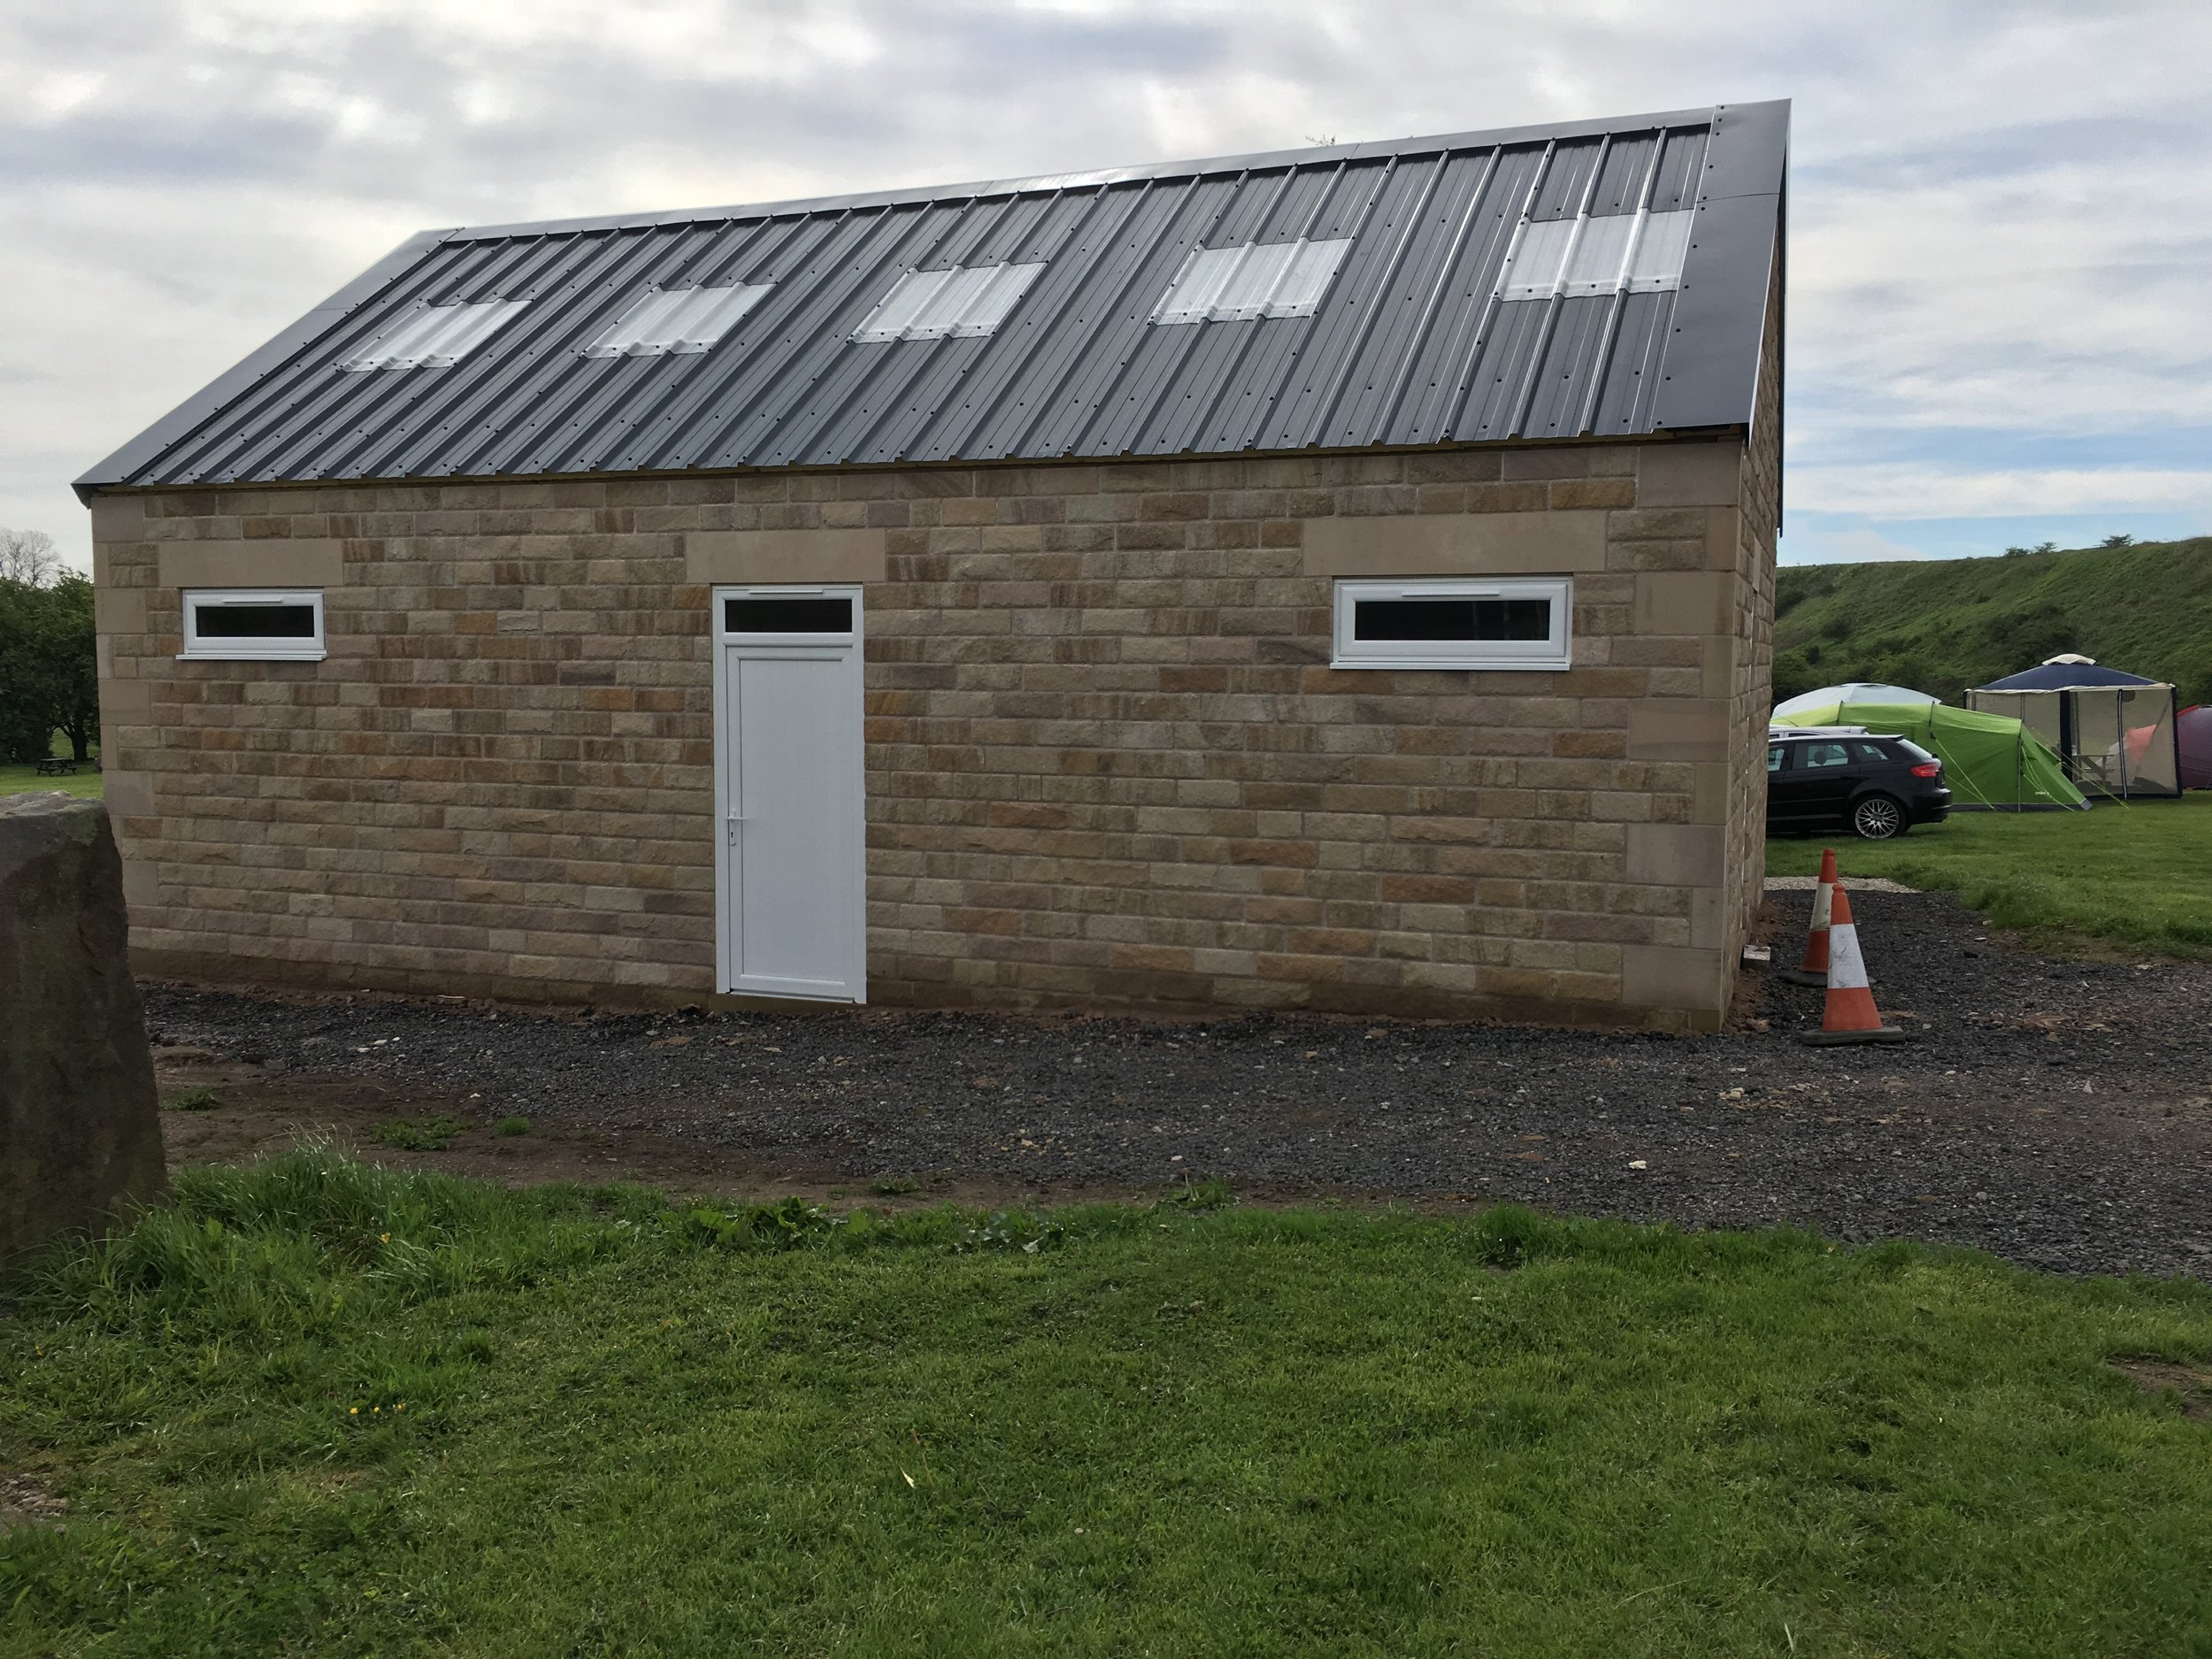 New toilet and shower block first stage of build, Now we have to kit out the interior, hopefully be ready towards the end of the season.🙂